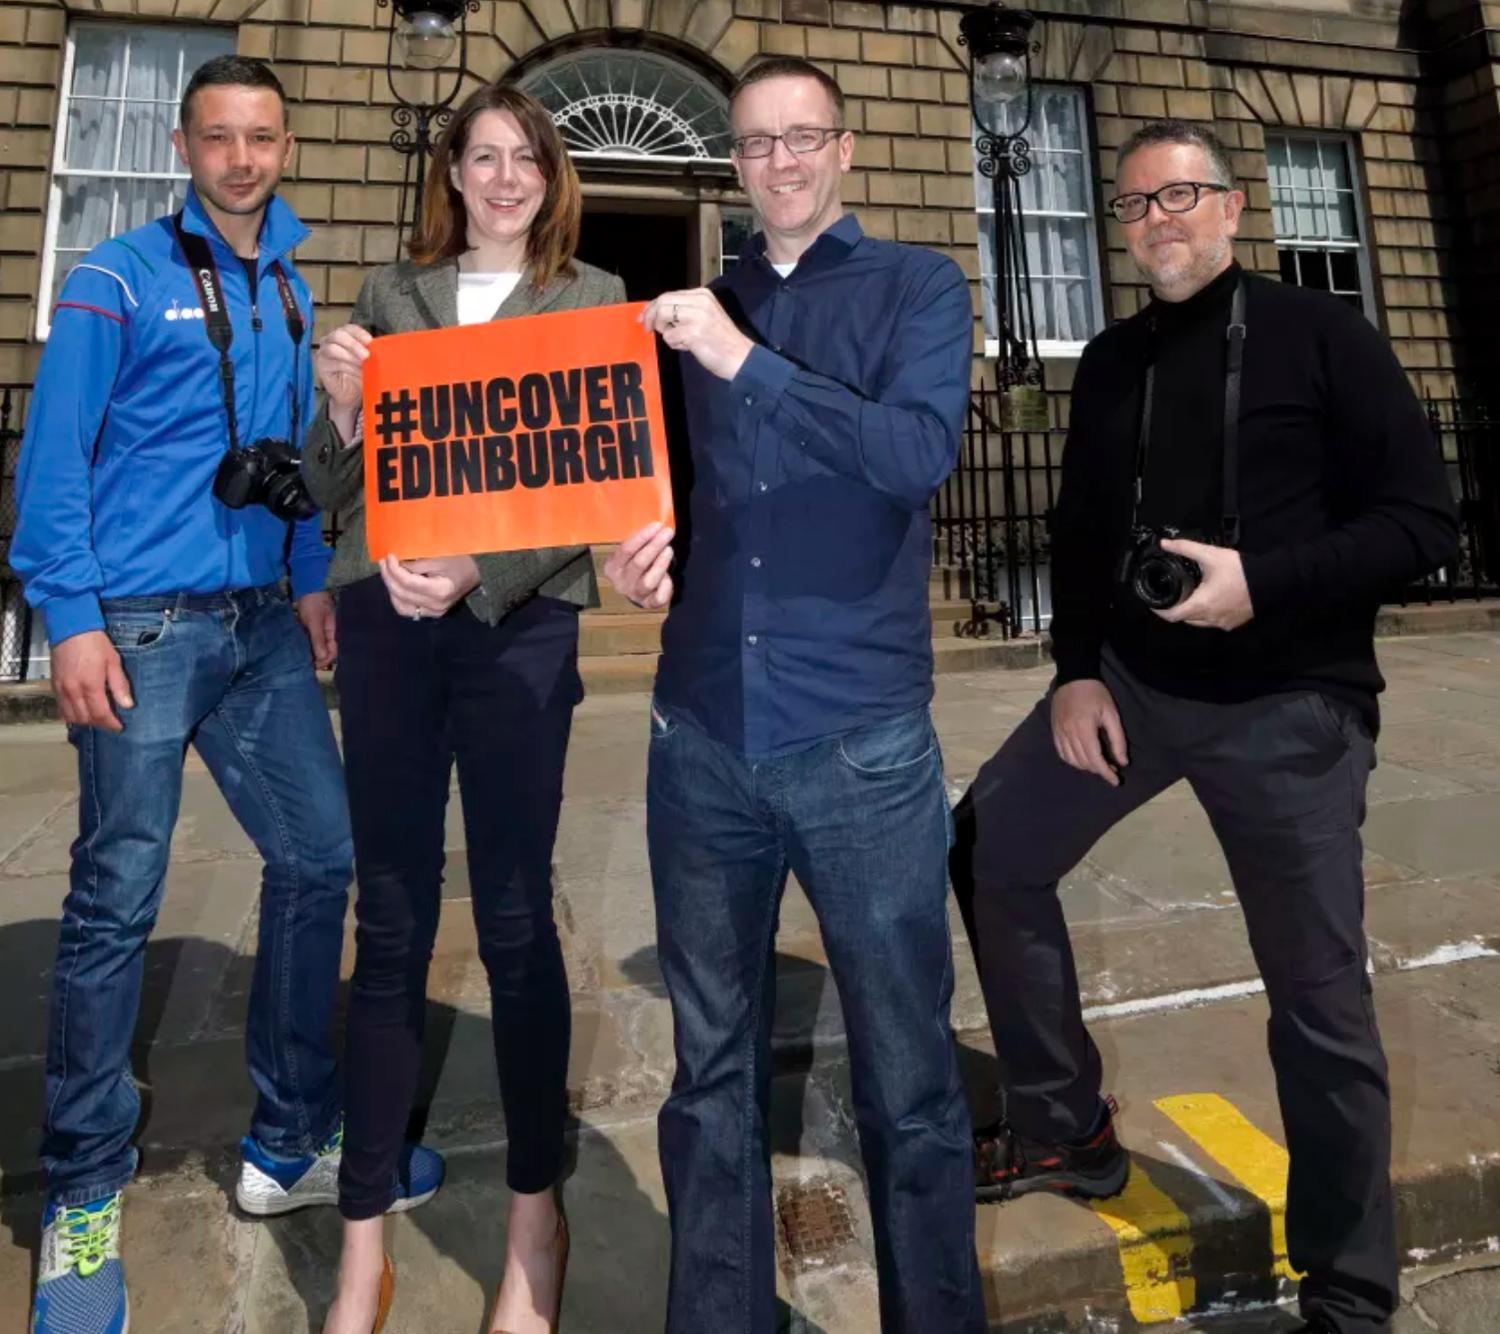 (From left): Influencers Davide Verri and Nicanor Garcia with Paula Ward, VisitScotland Regional Leadership Director, and Pete Duncan, Chair of Youth Travel Edinburgh